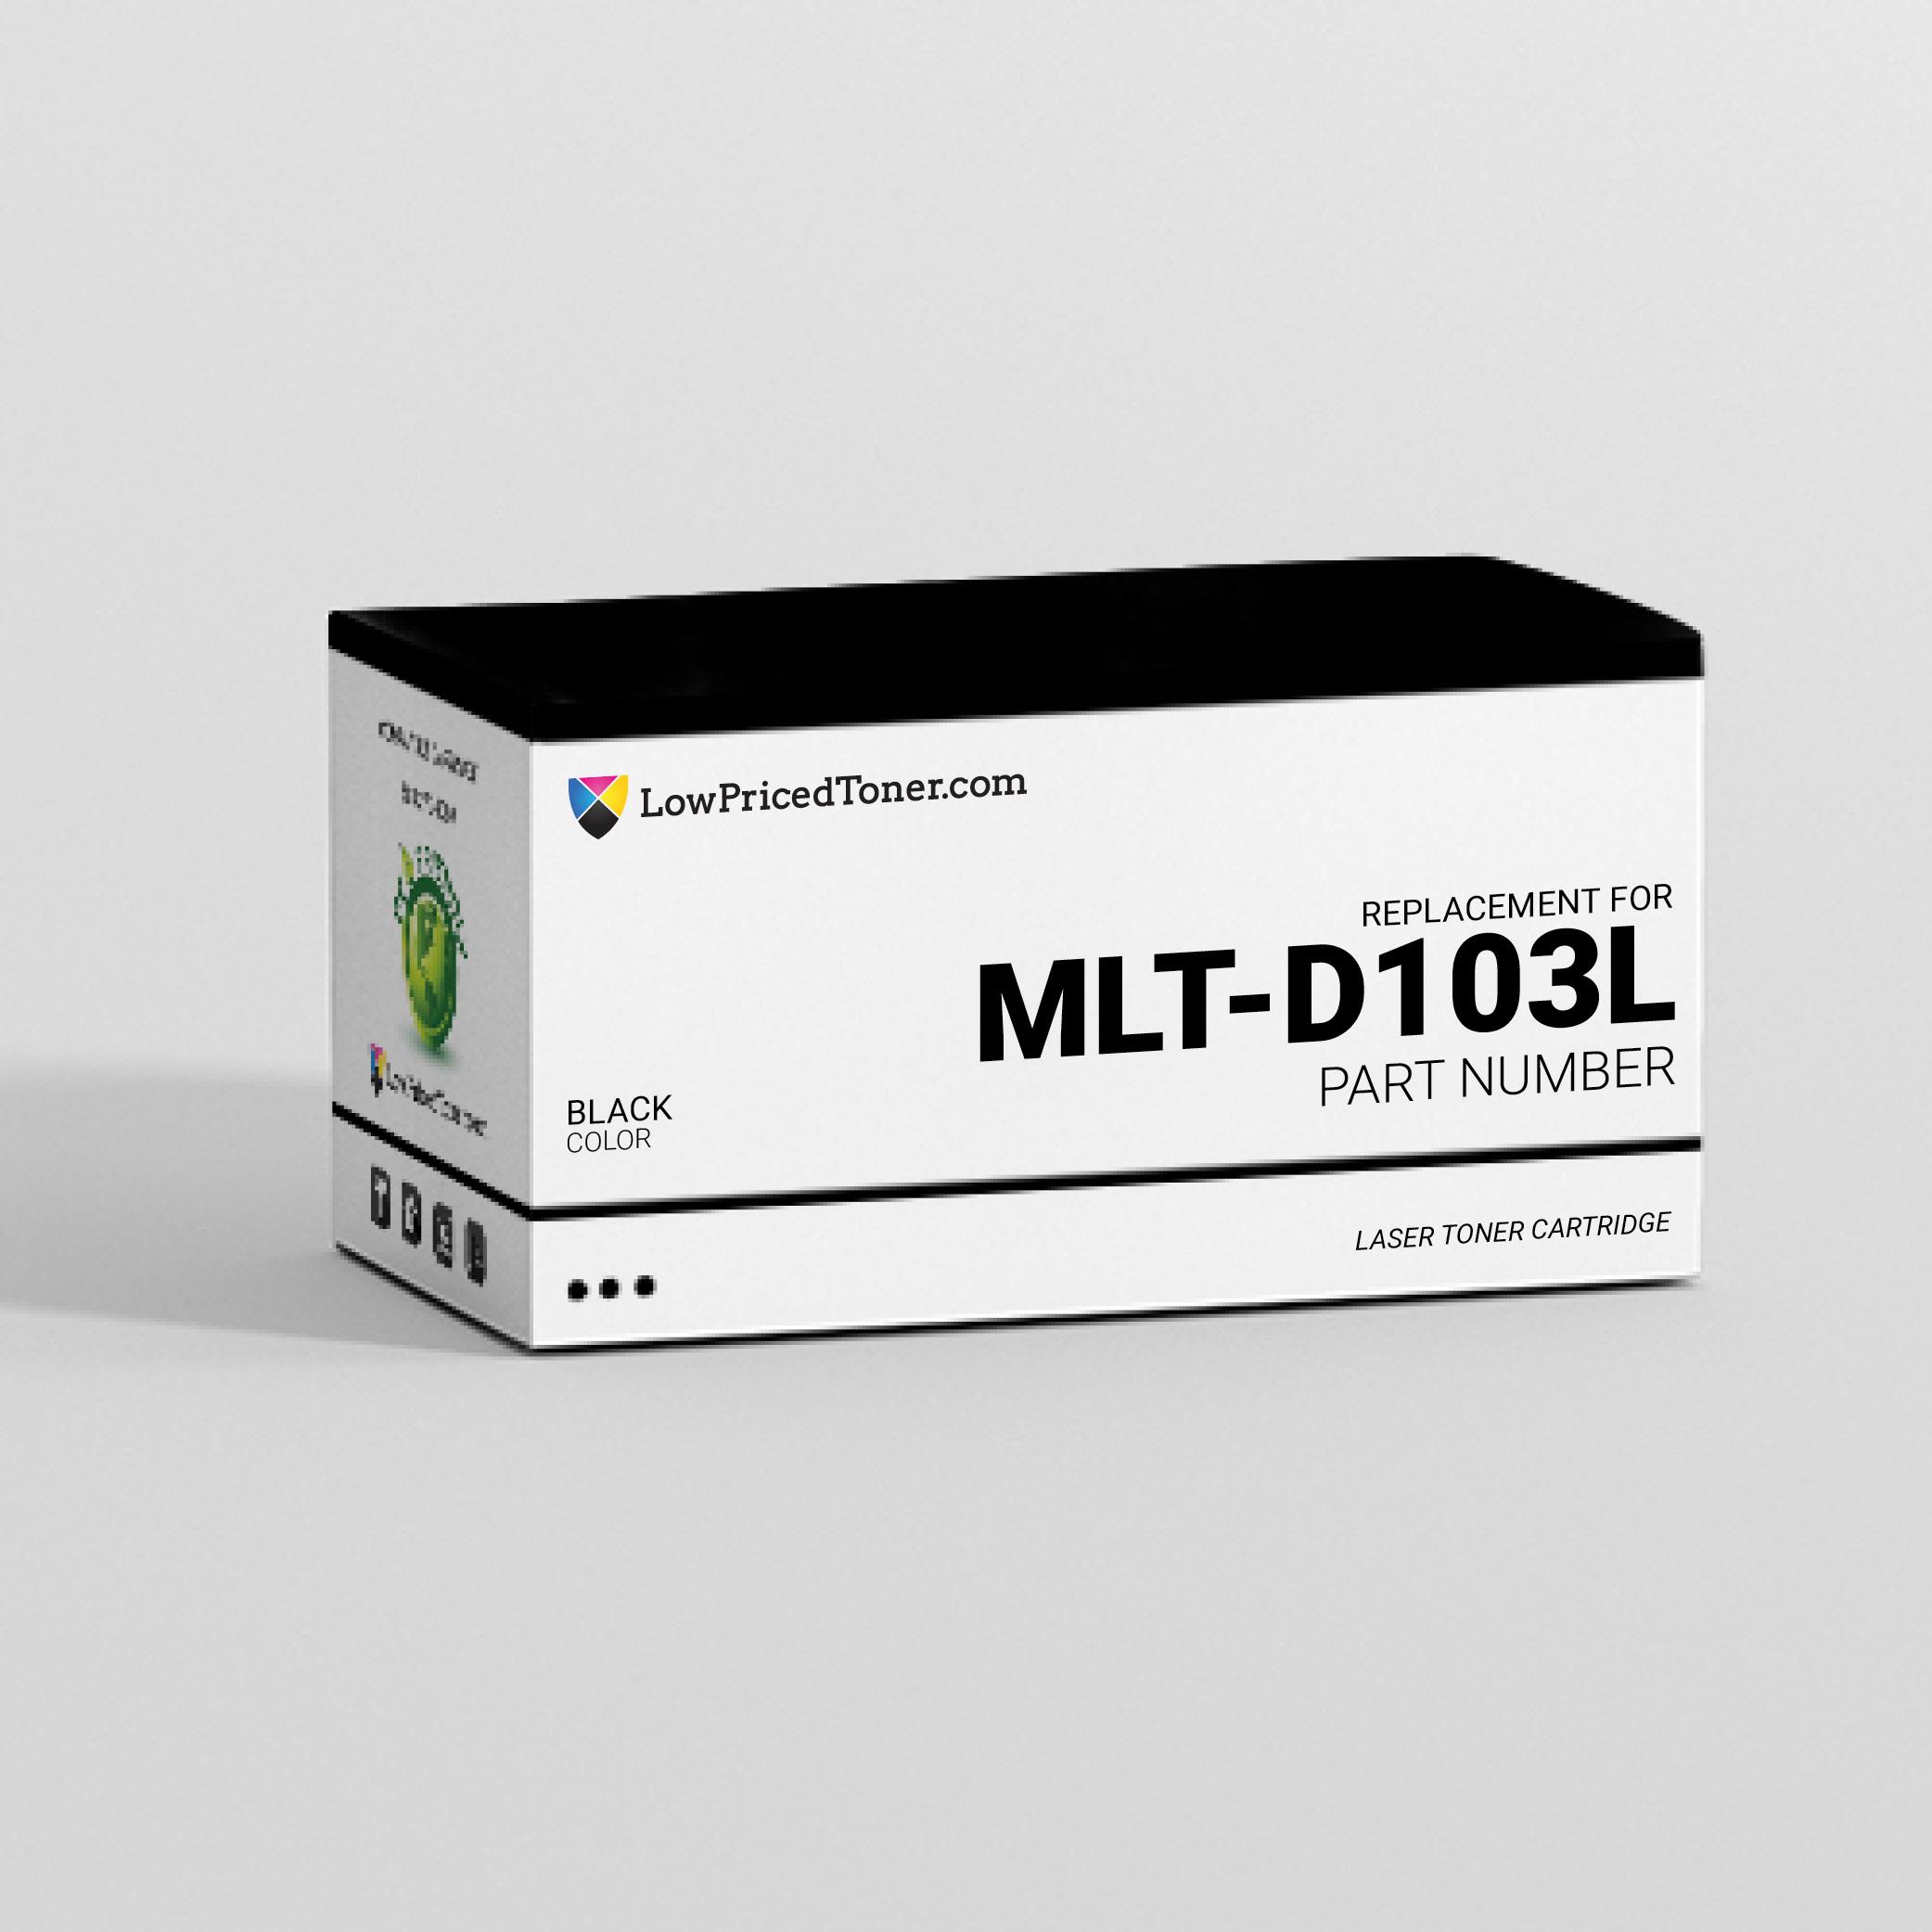 Samsung MLT-D103L Compatible Black Laser Toner Cartridge